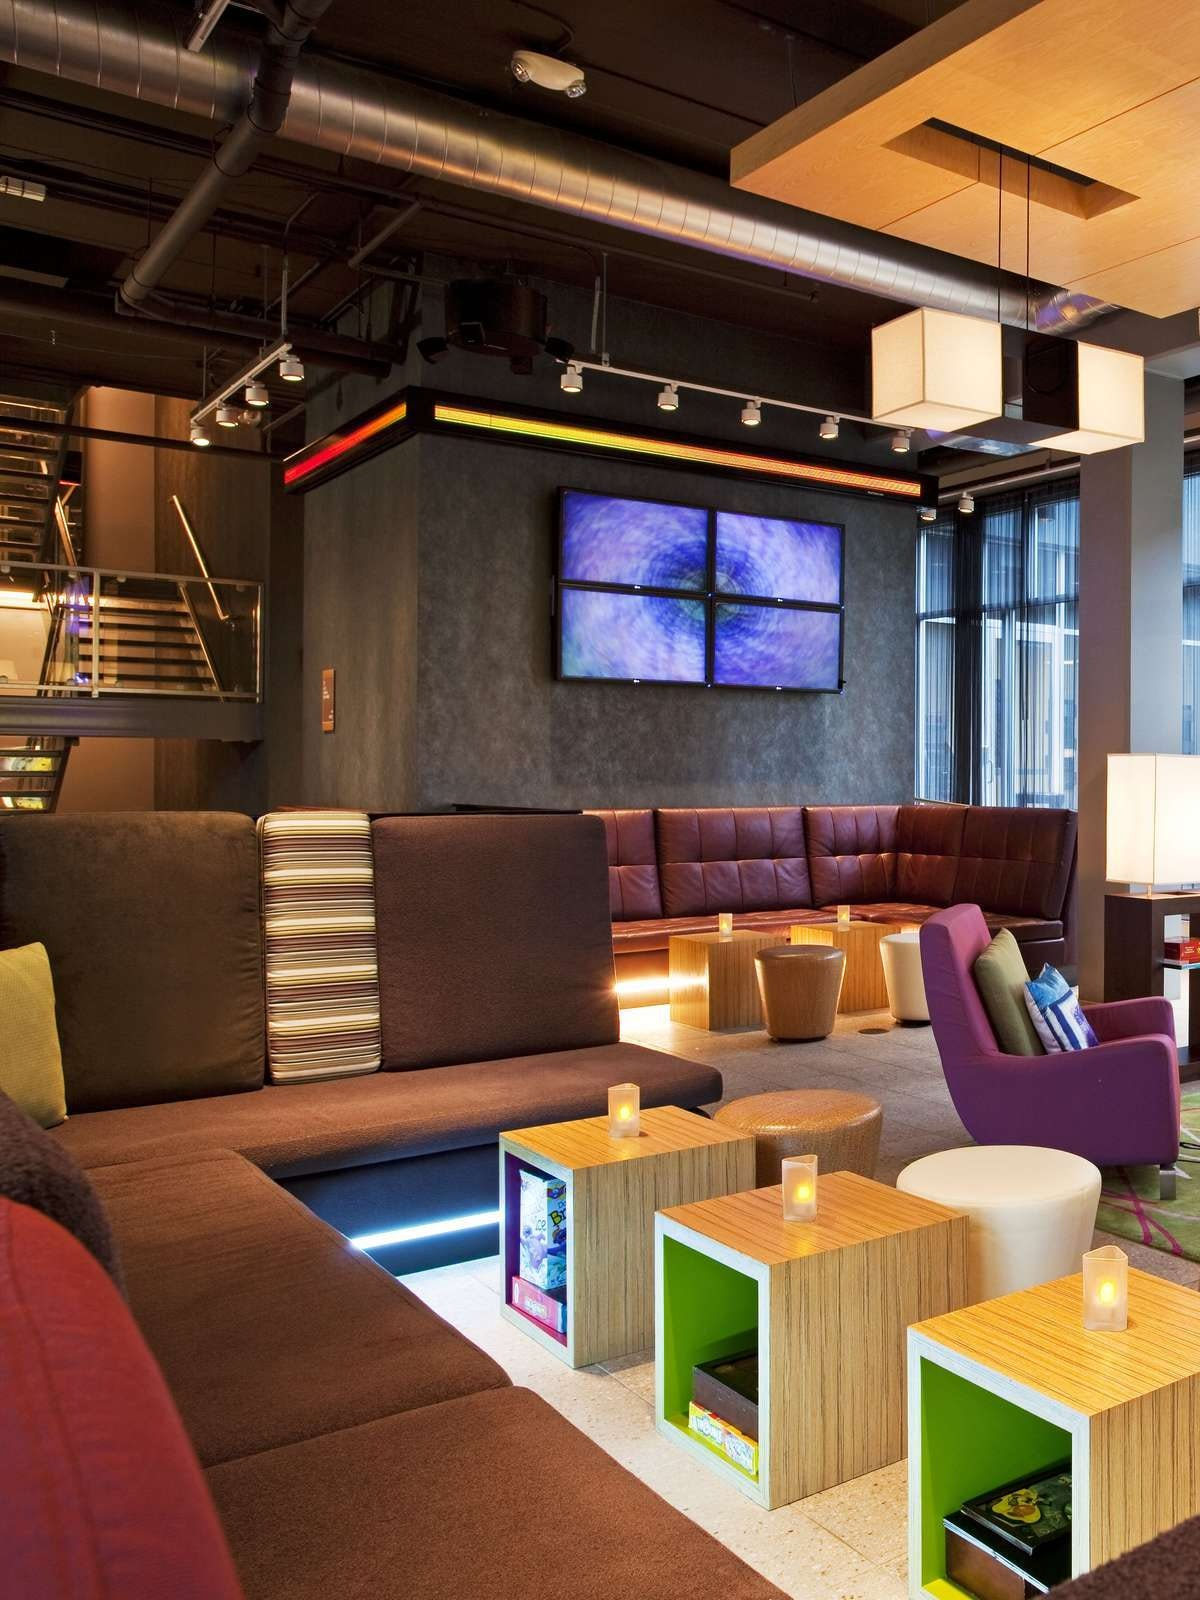 Aloft Chicago O'Hare